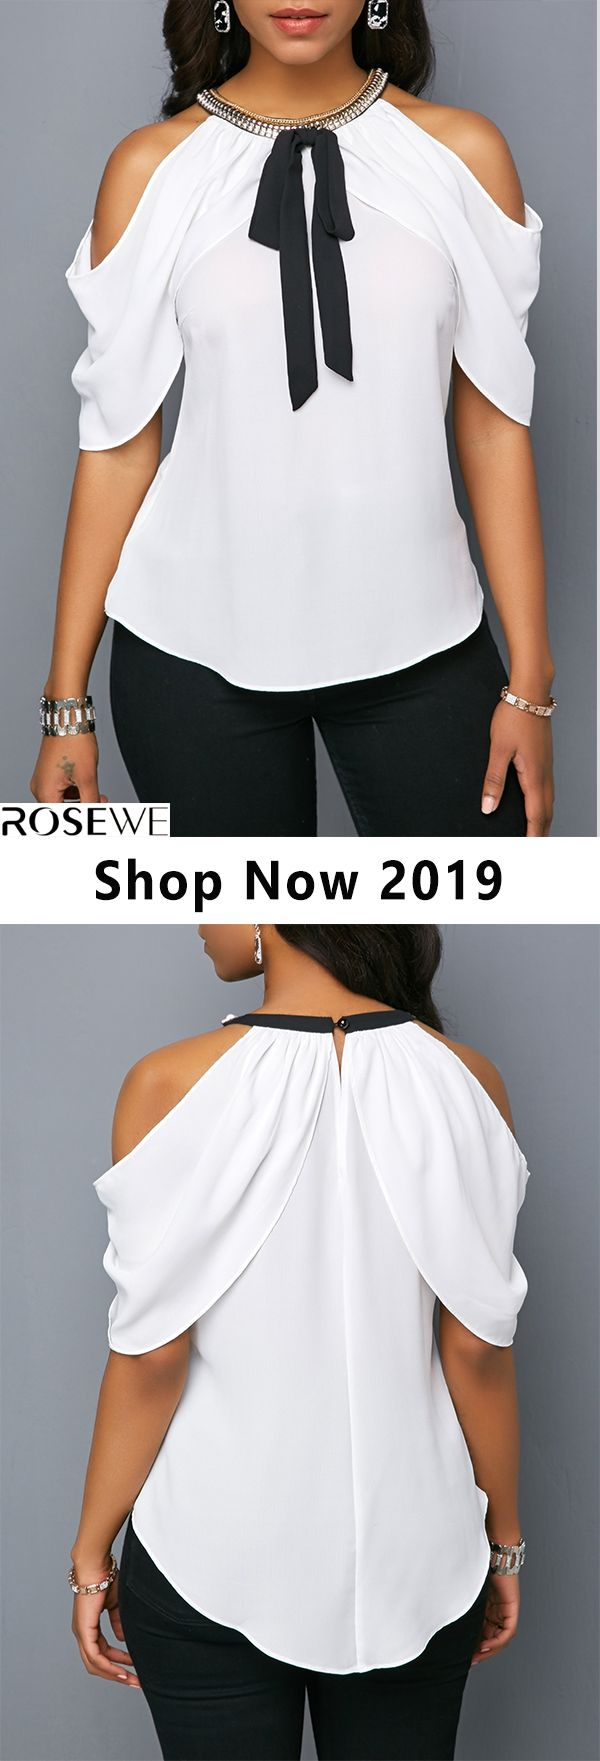 New arrival top, upgrade your wardrobe and try new styles this year 7